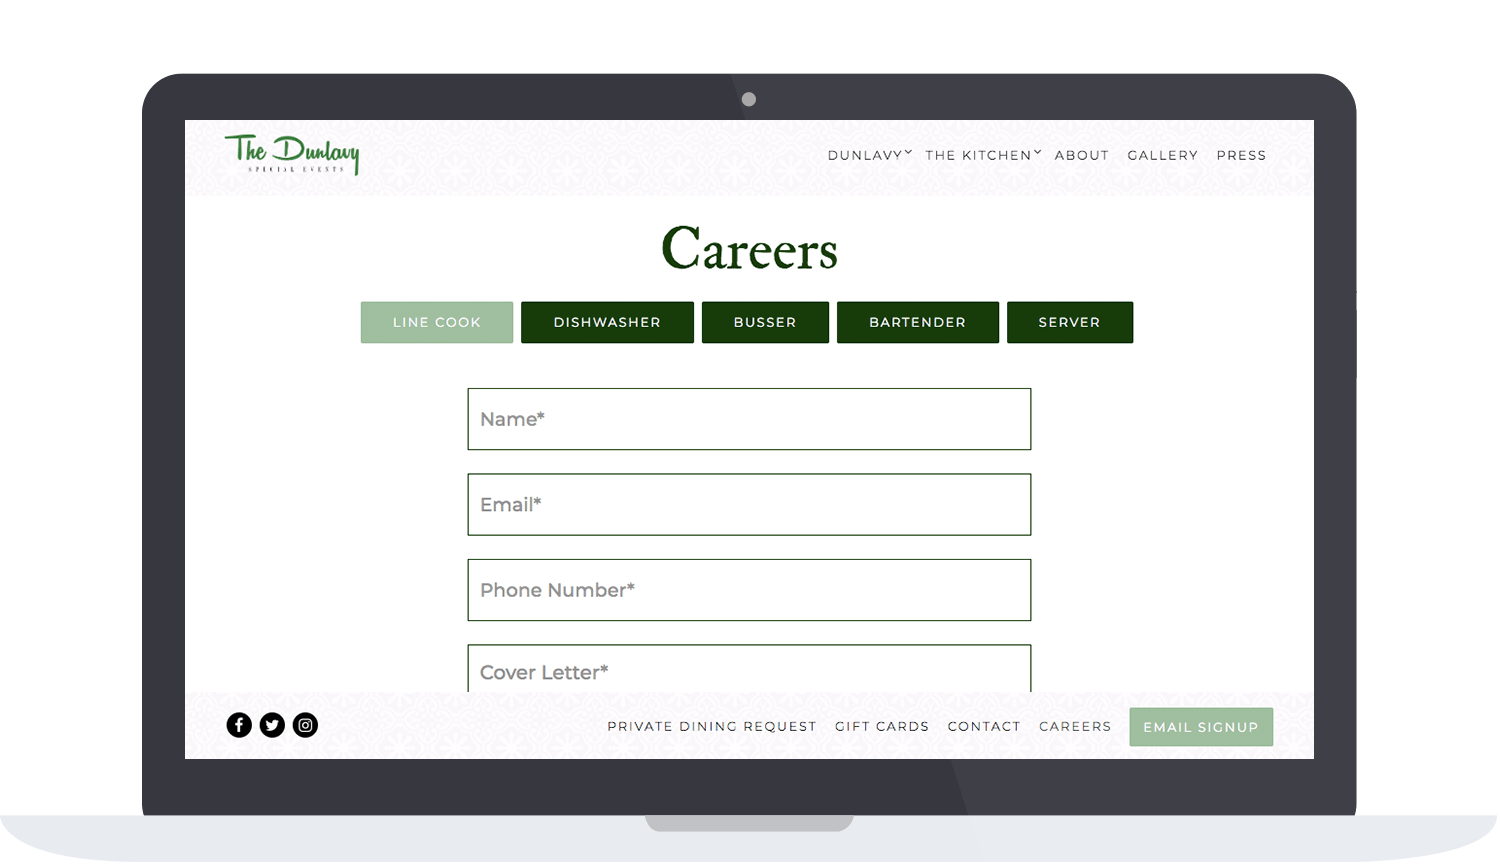 The Dunlavy's websites career page